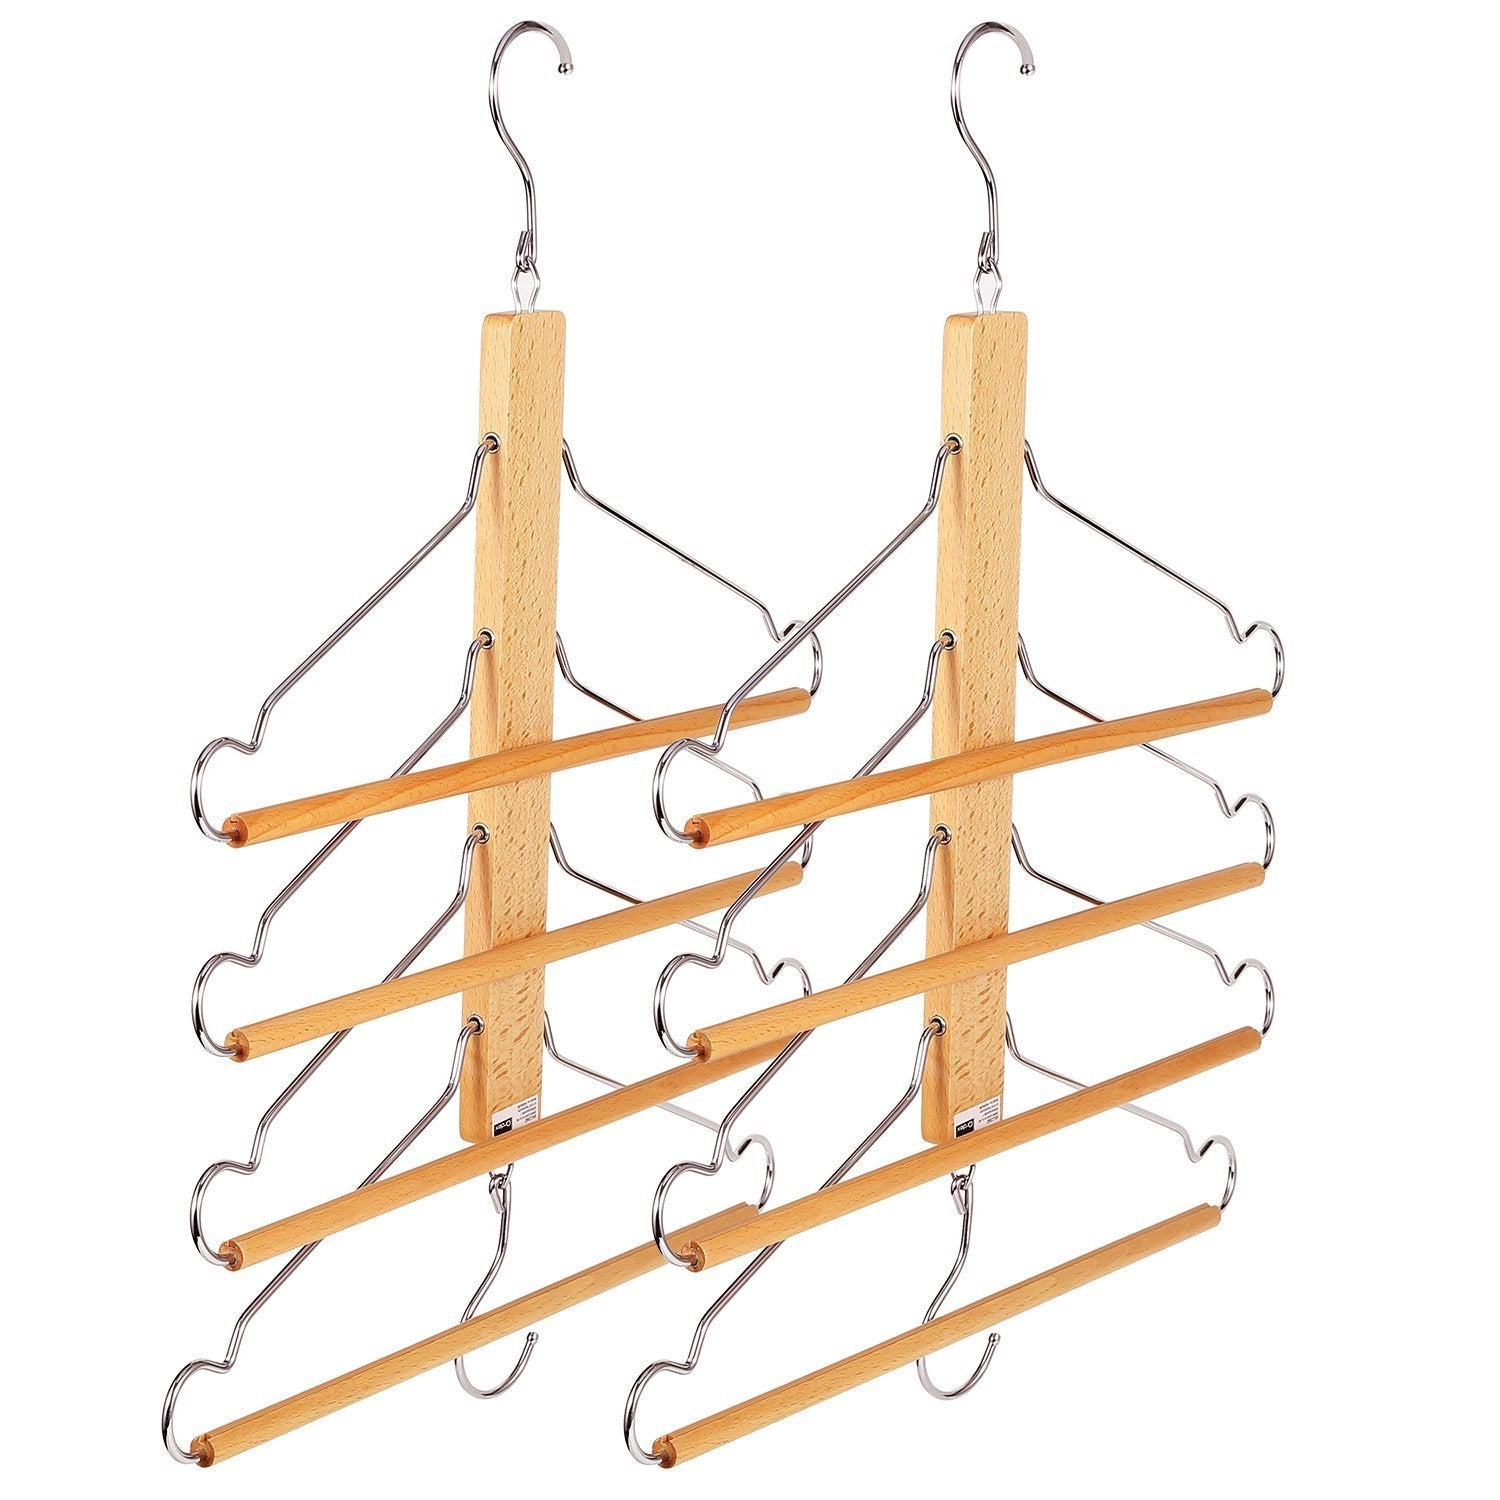 BESTOOL Pants Hangers, Wooden Pant Hangers, Non Slip Wood Hangers Clothes Hangers for Closet Space Saving, Heavy Duty Coat Hanger Huggable Baby Hangers, Dual-use Trouser Hanger